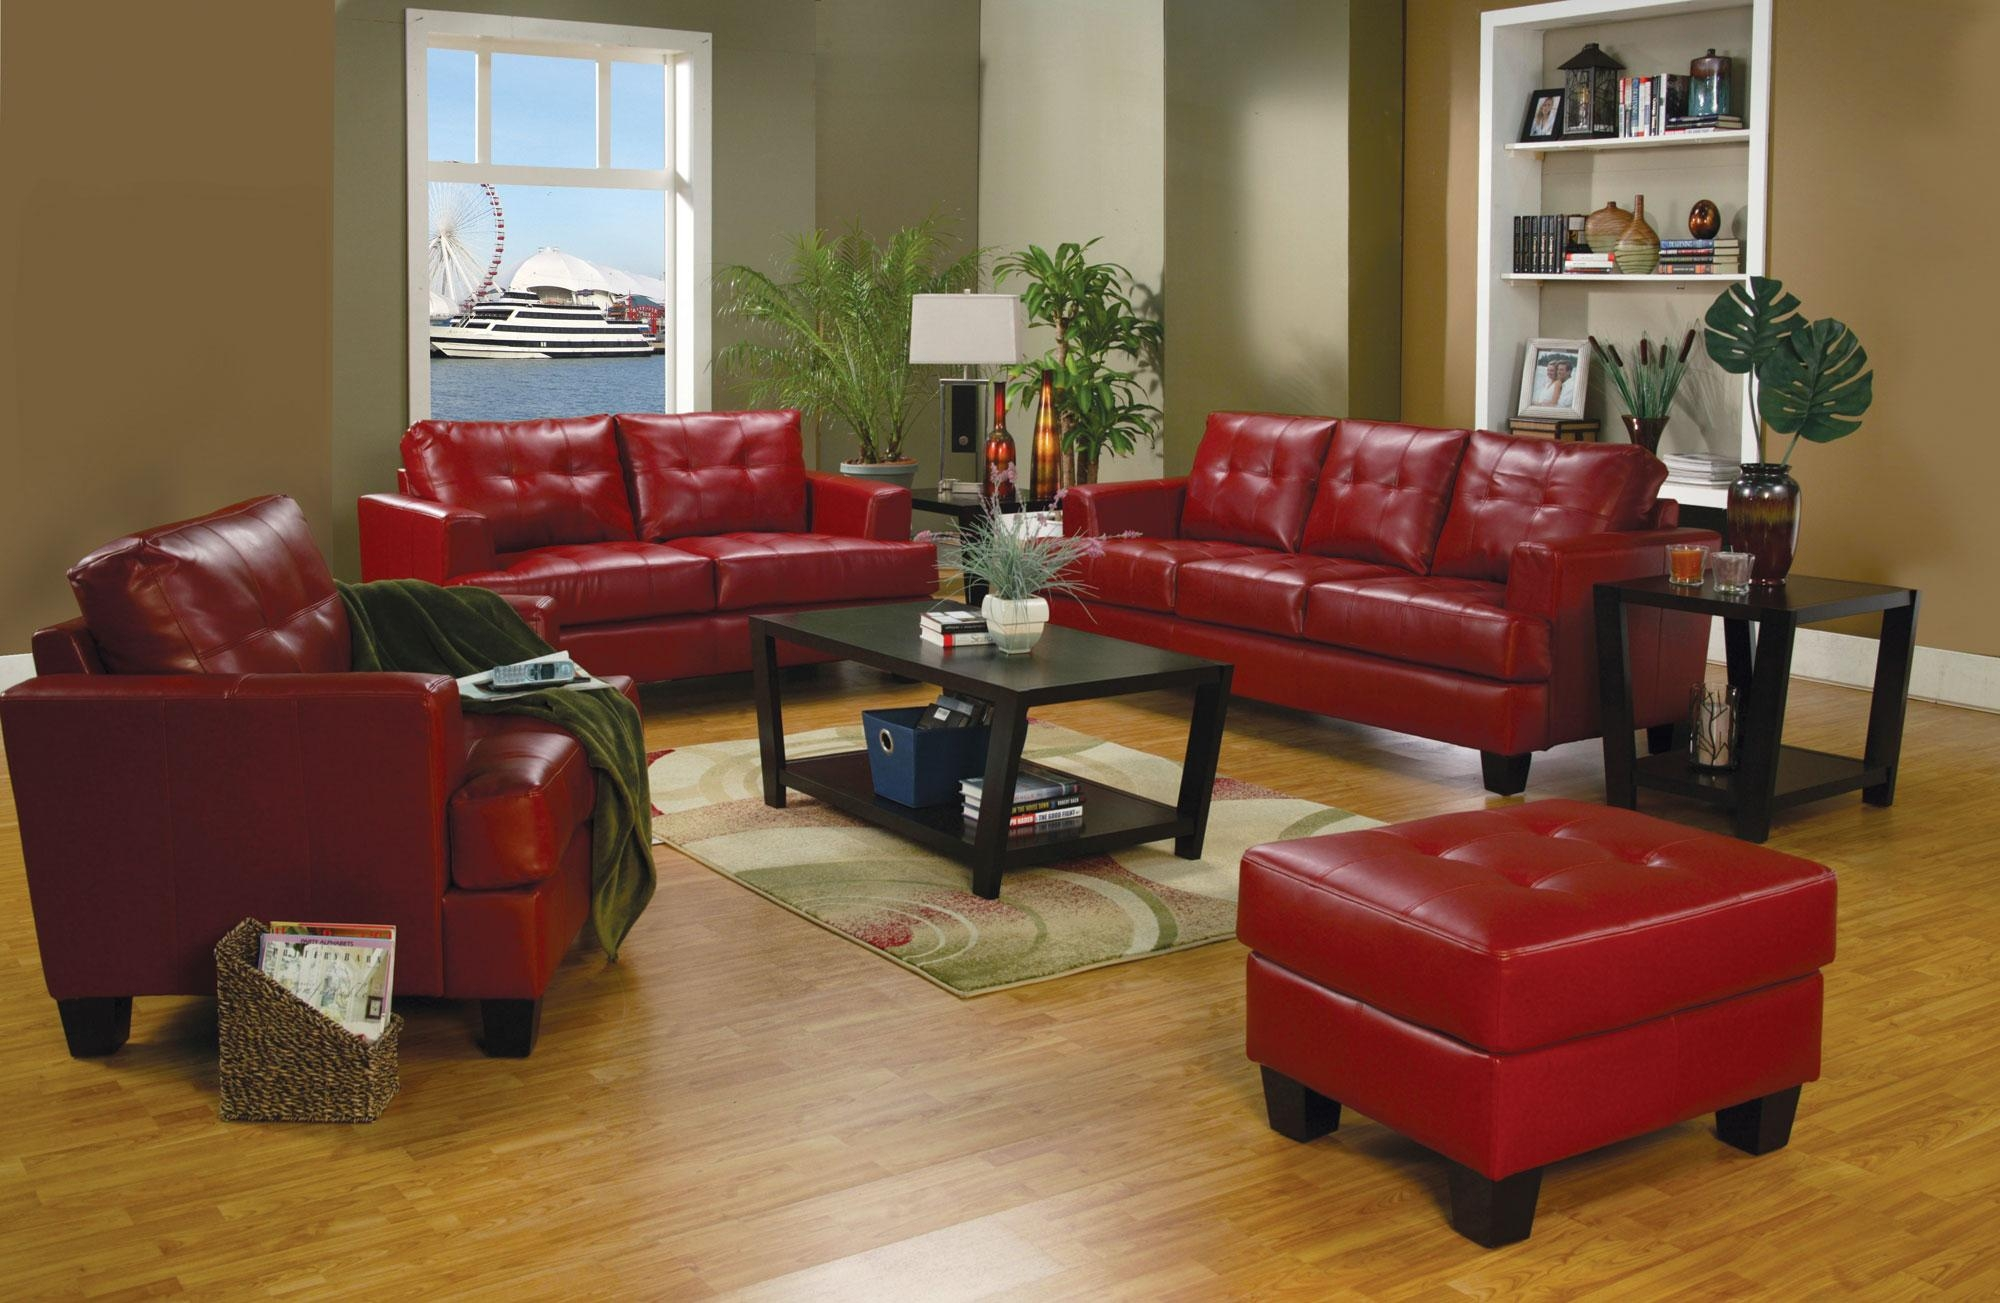 20 Photos Dark Red Leather Sofas Sofa Ideas